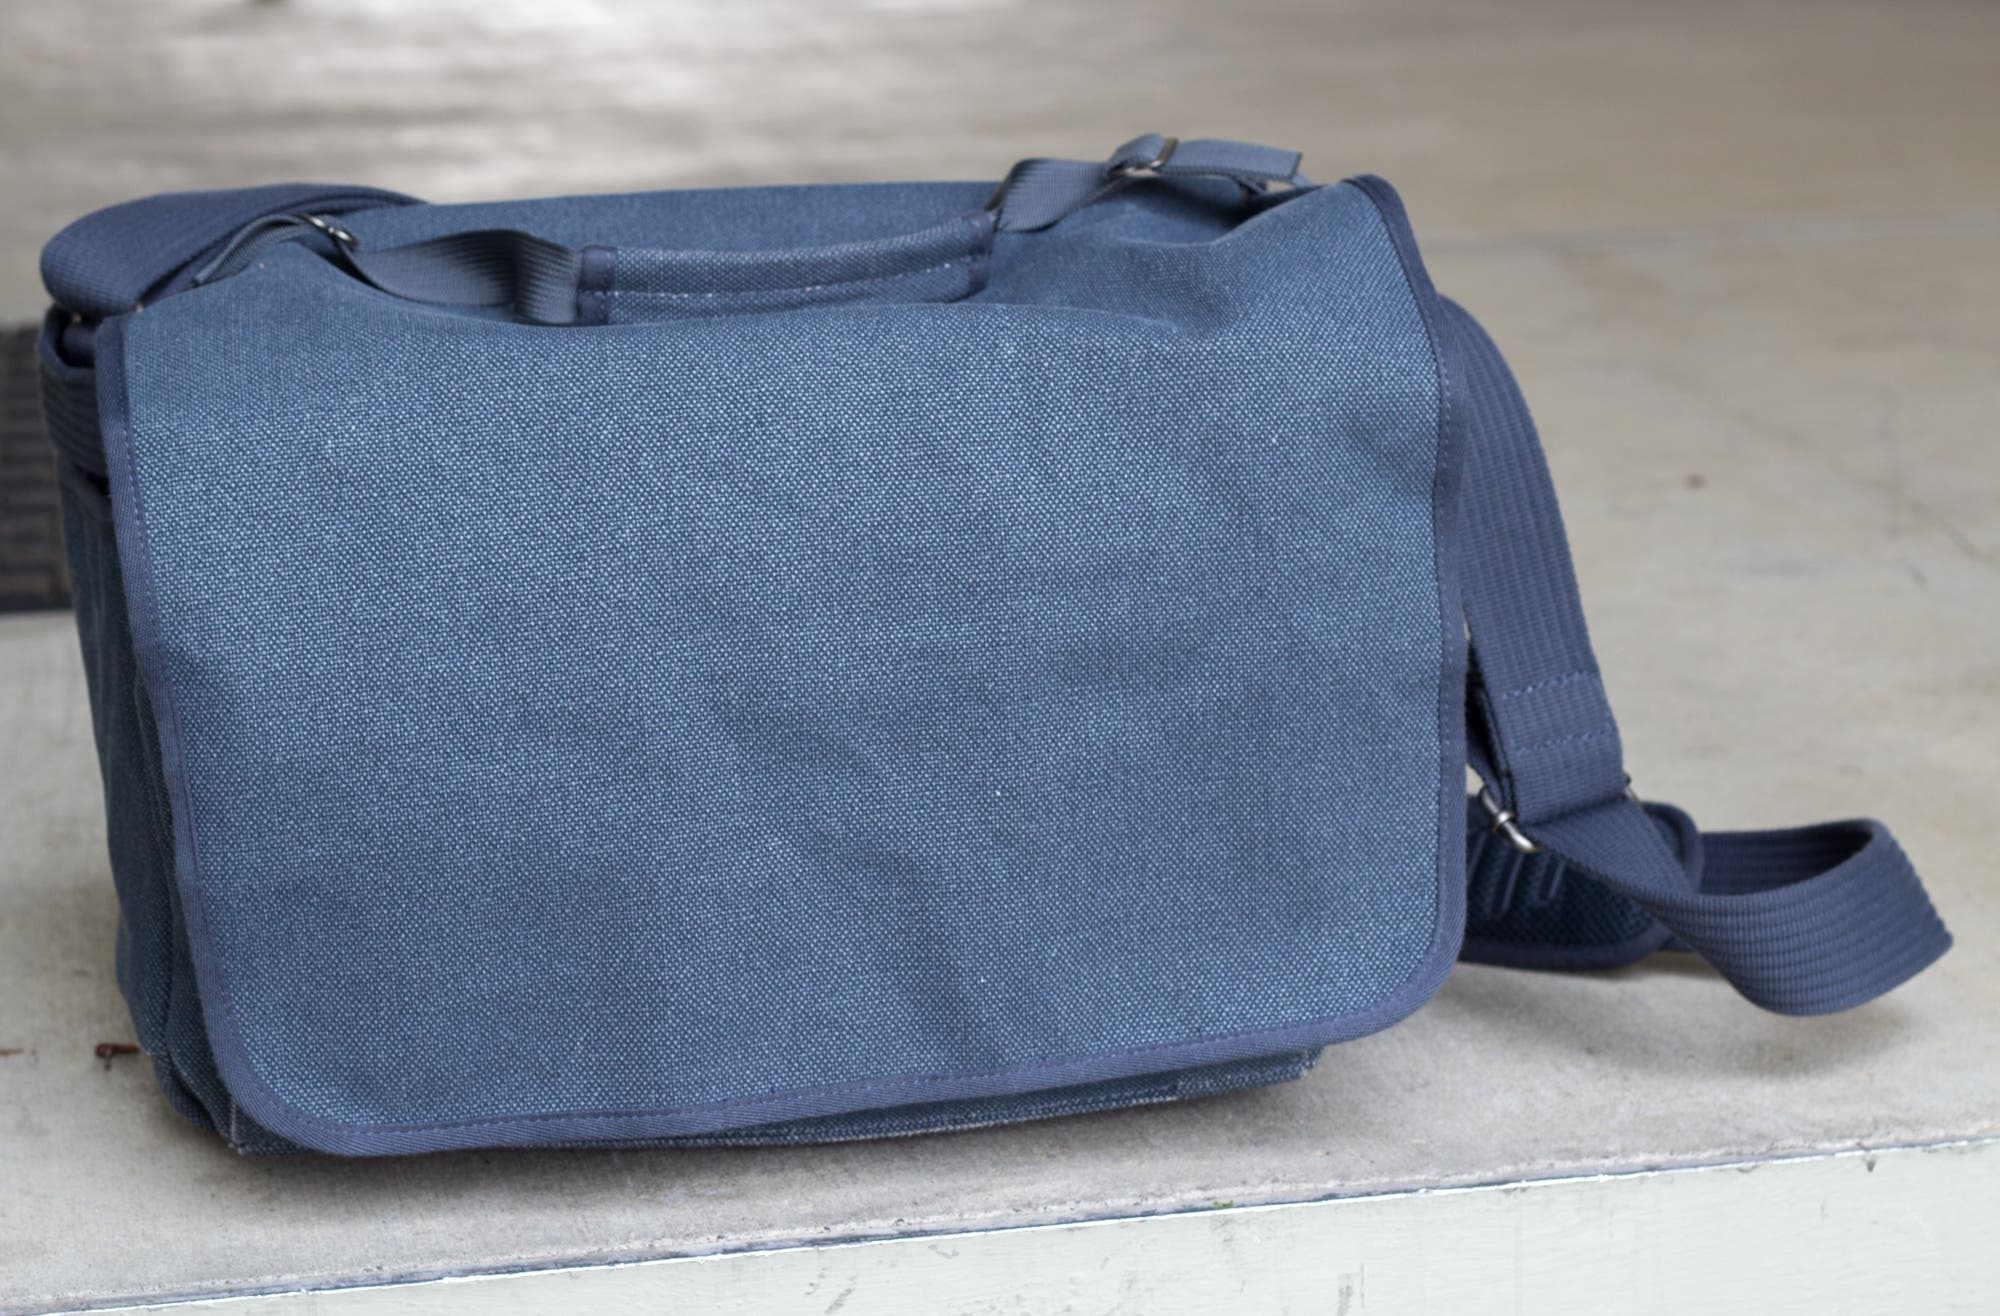 Review: Think Tank Retrospective 50 Camera Bag